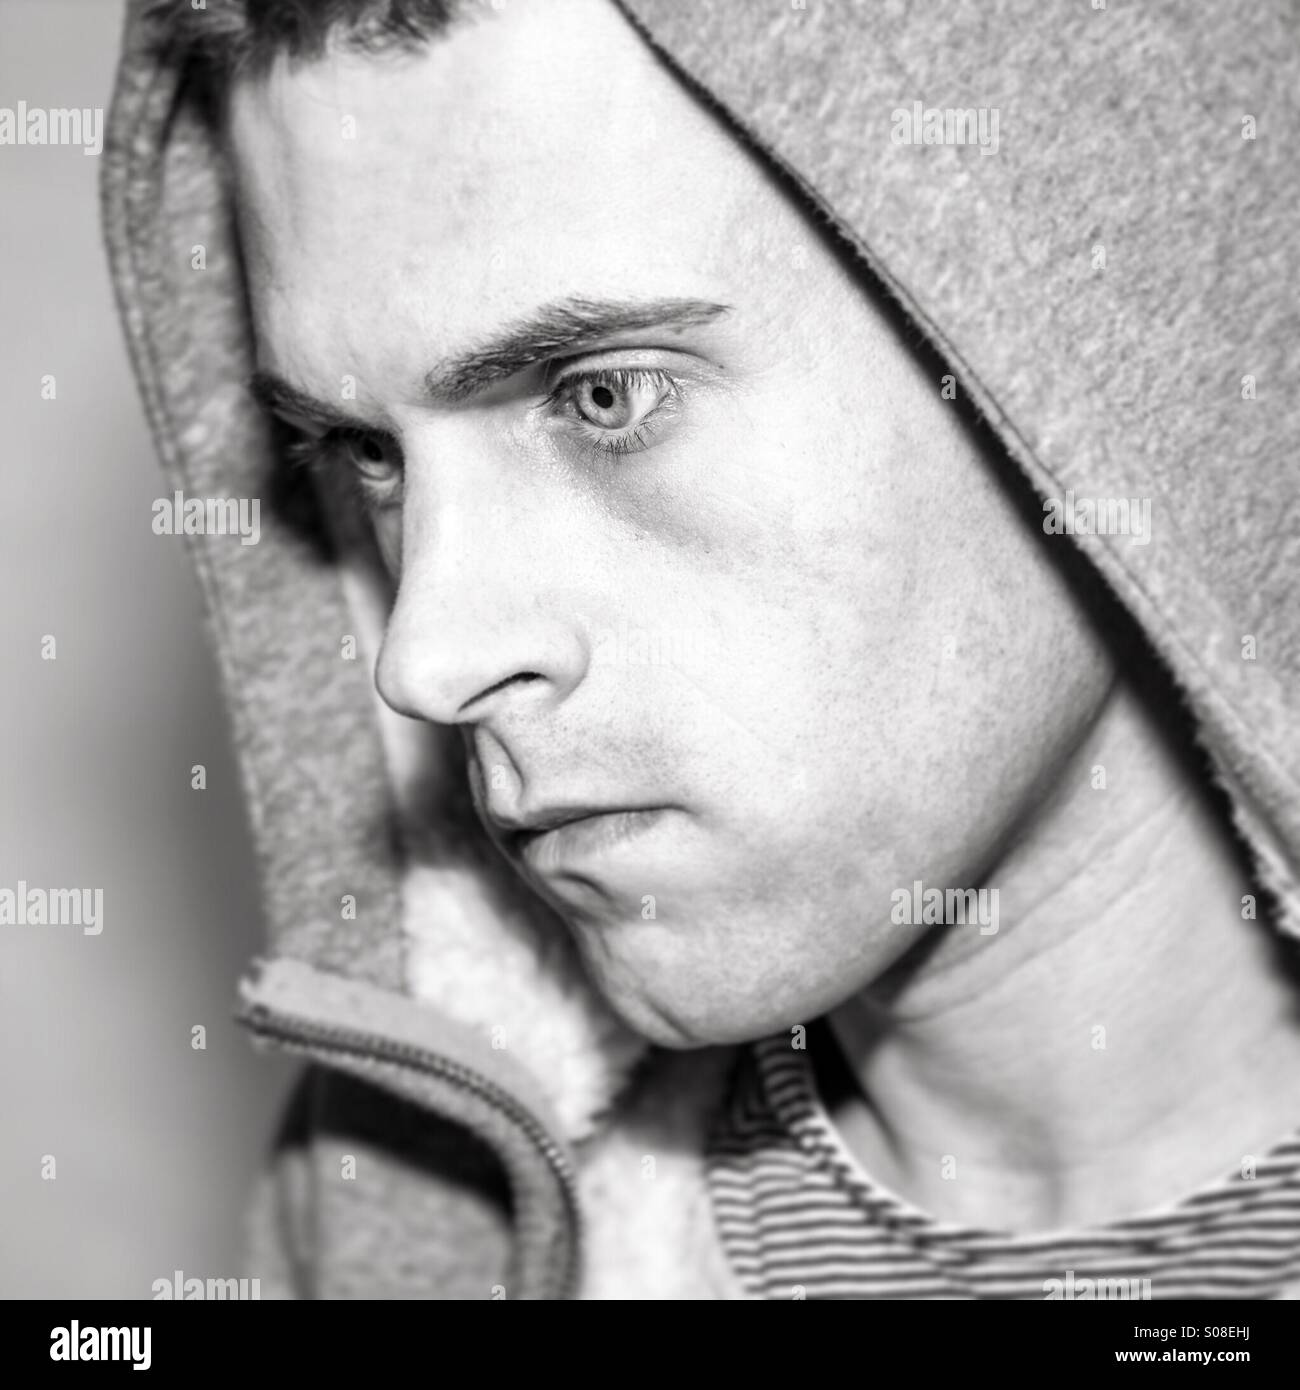 Young male staring away from camera wearing hood - Stock Image